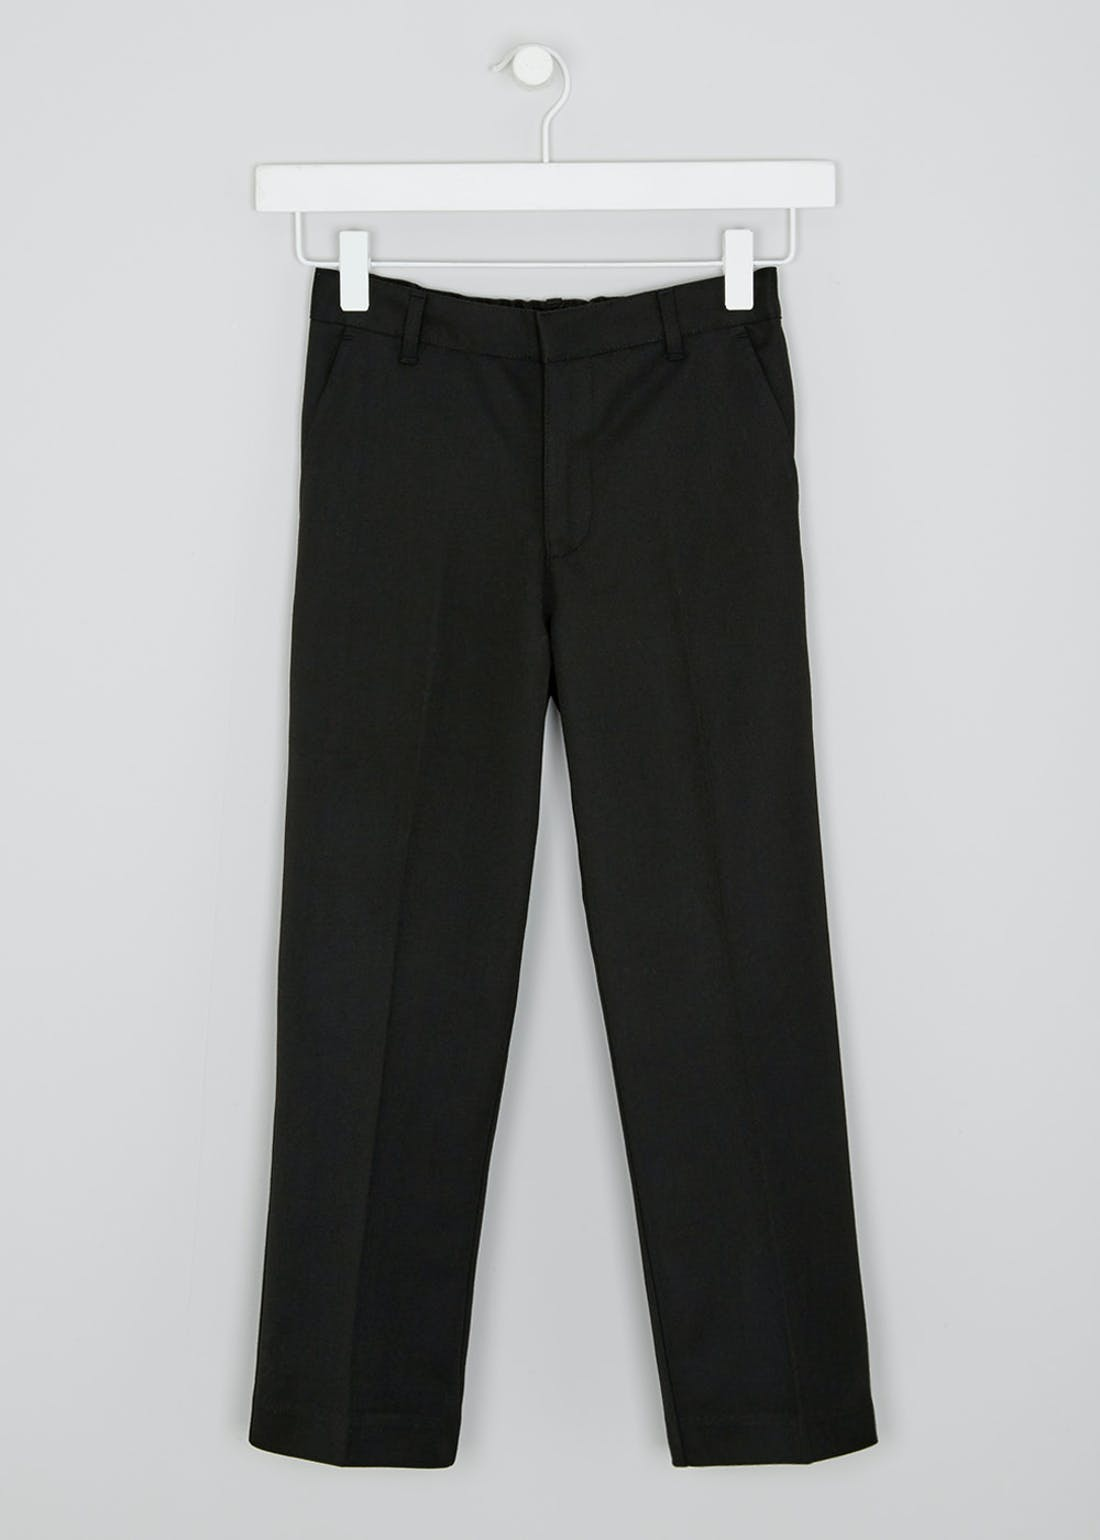 Boys Black Generous Fit School Trousers (6-16yrs)